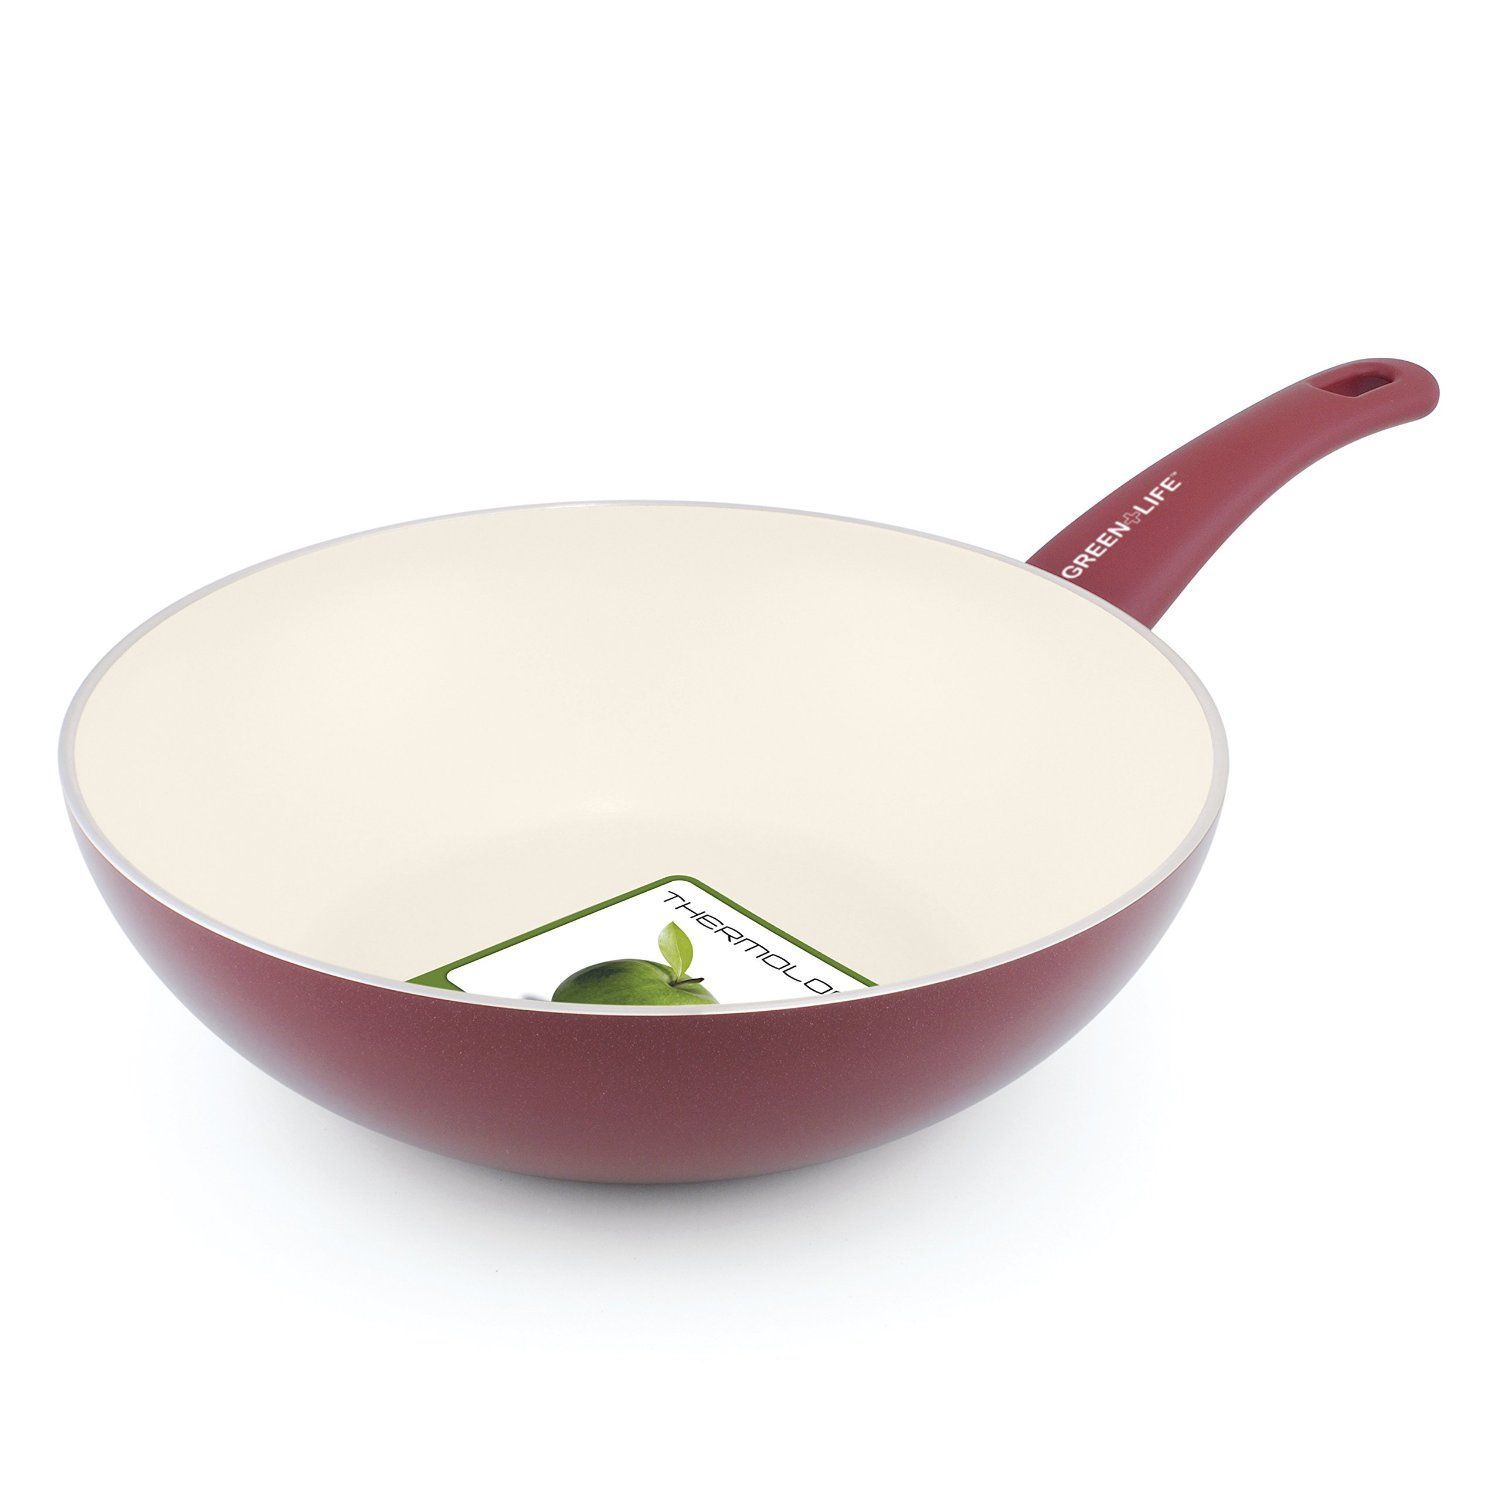 Greenlife 11 Inch Ceramic Non Stick Wok With Soft Grip Red Click Image For More Details Wok